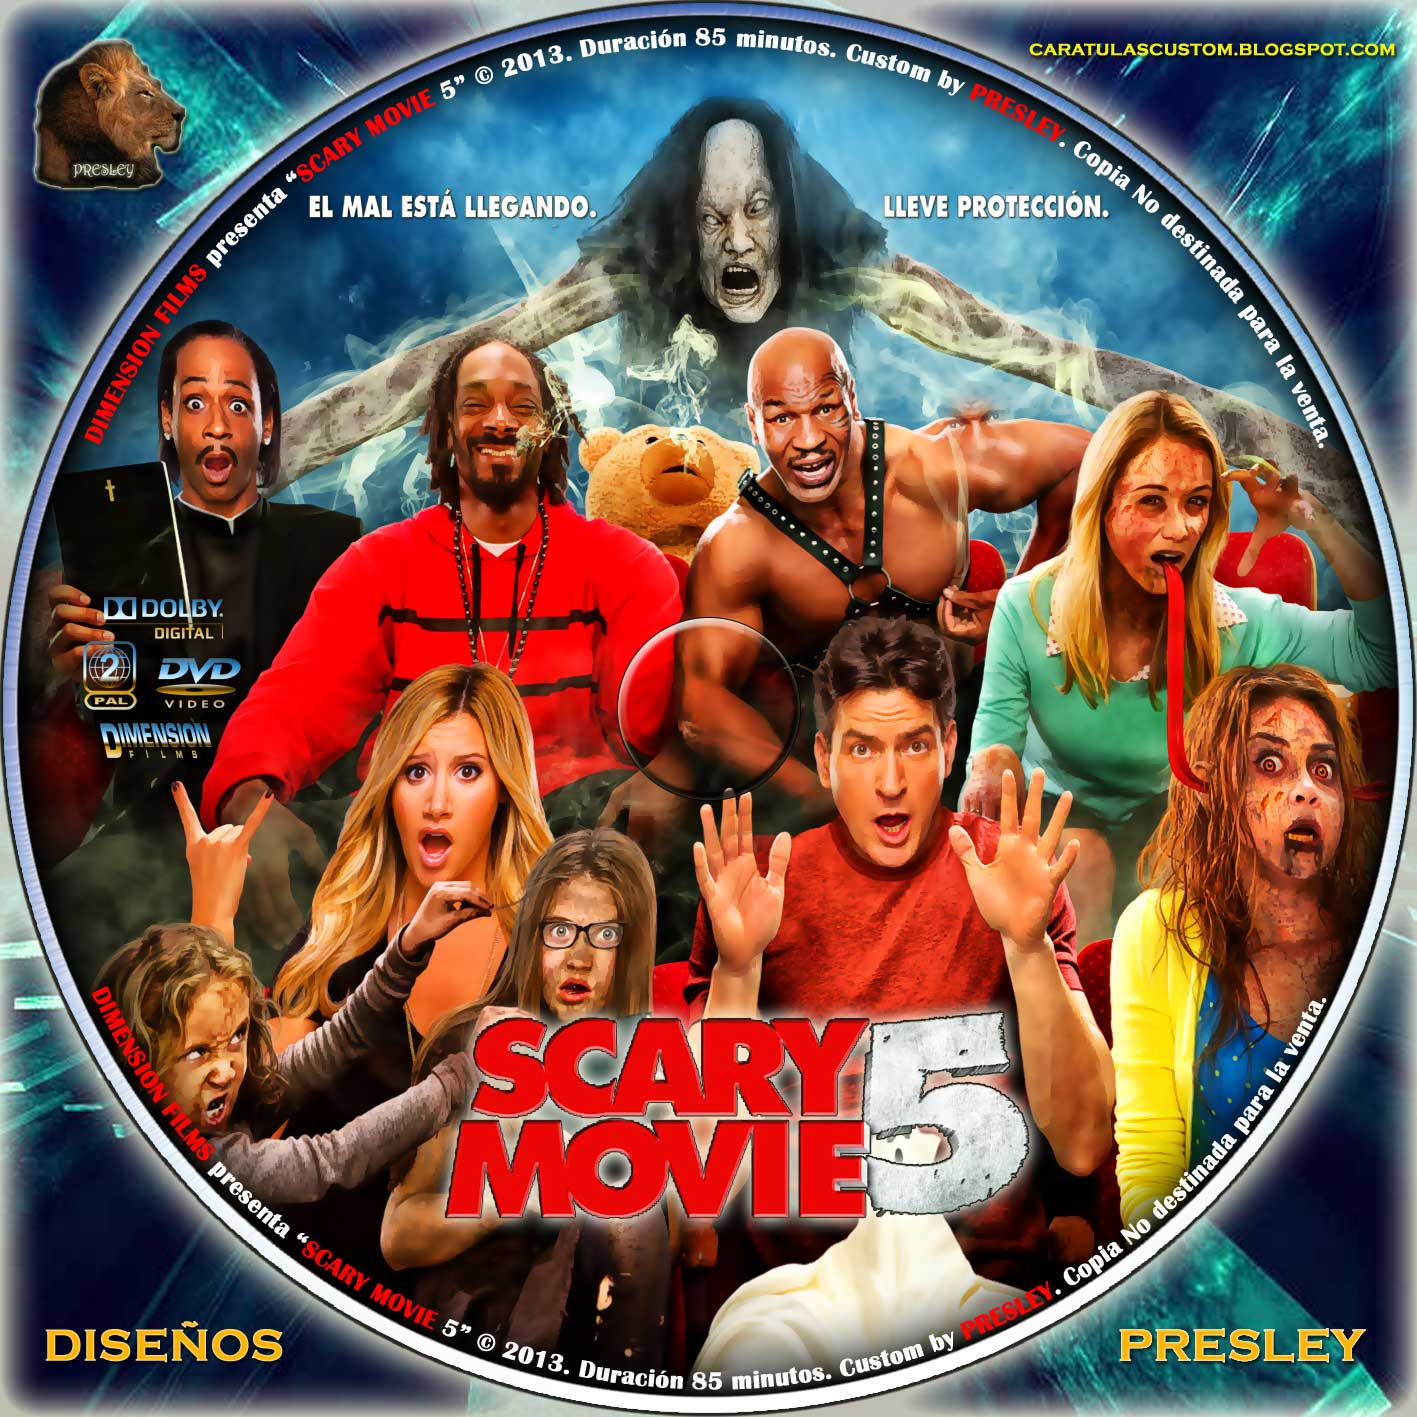 Scary Movie 5 Production Info Abou The Production Scary Movie 5 Cast Scary Movie 5 Images Pictures Photos Icons And Wallpapers Ravepad The Place To Rave About Anything And Everything